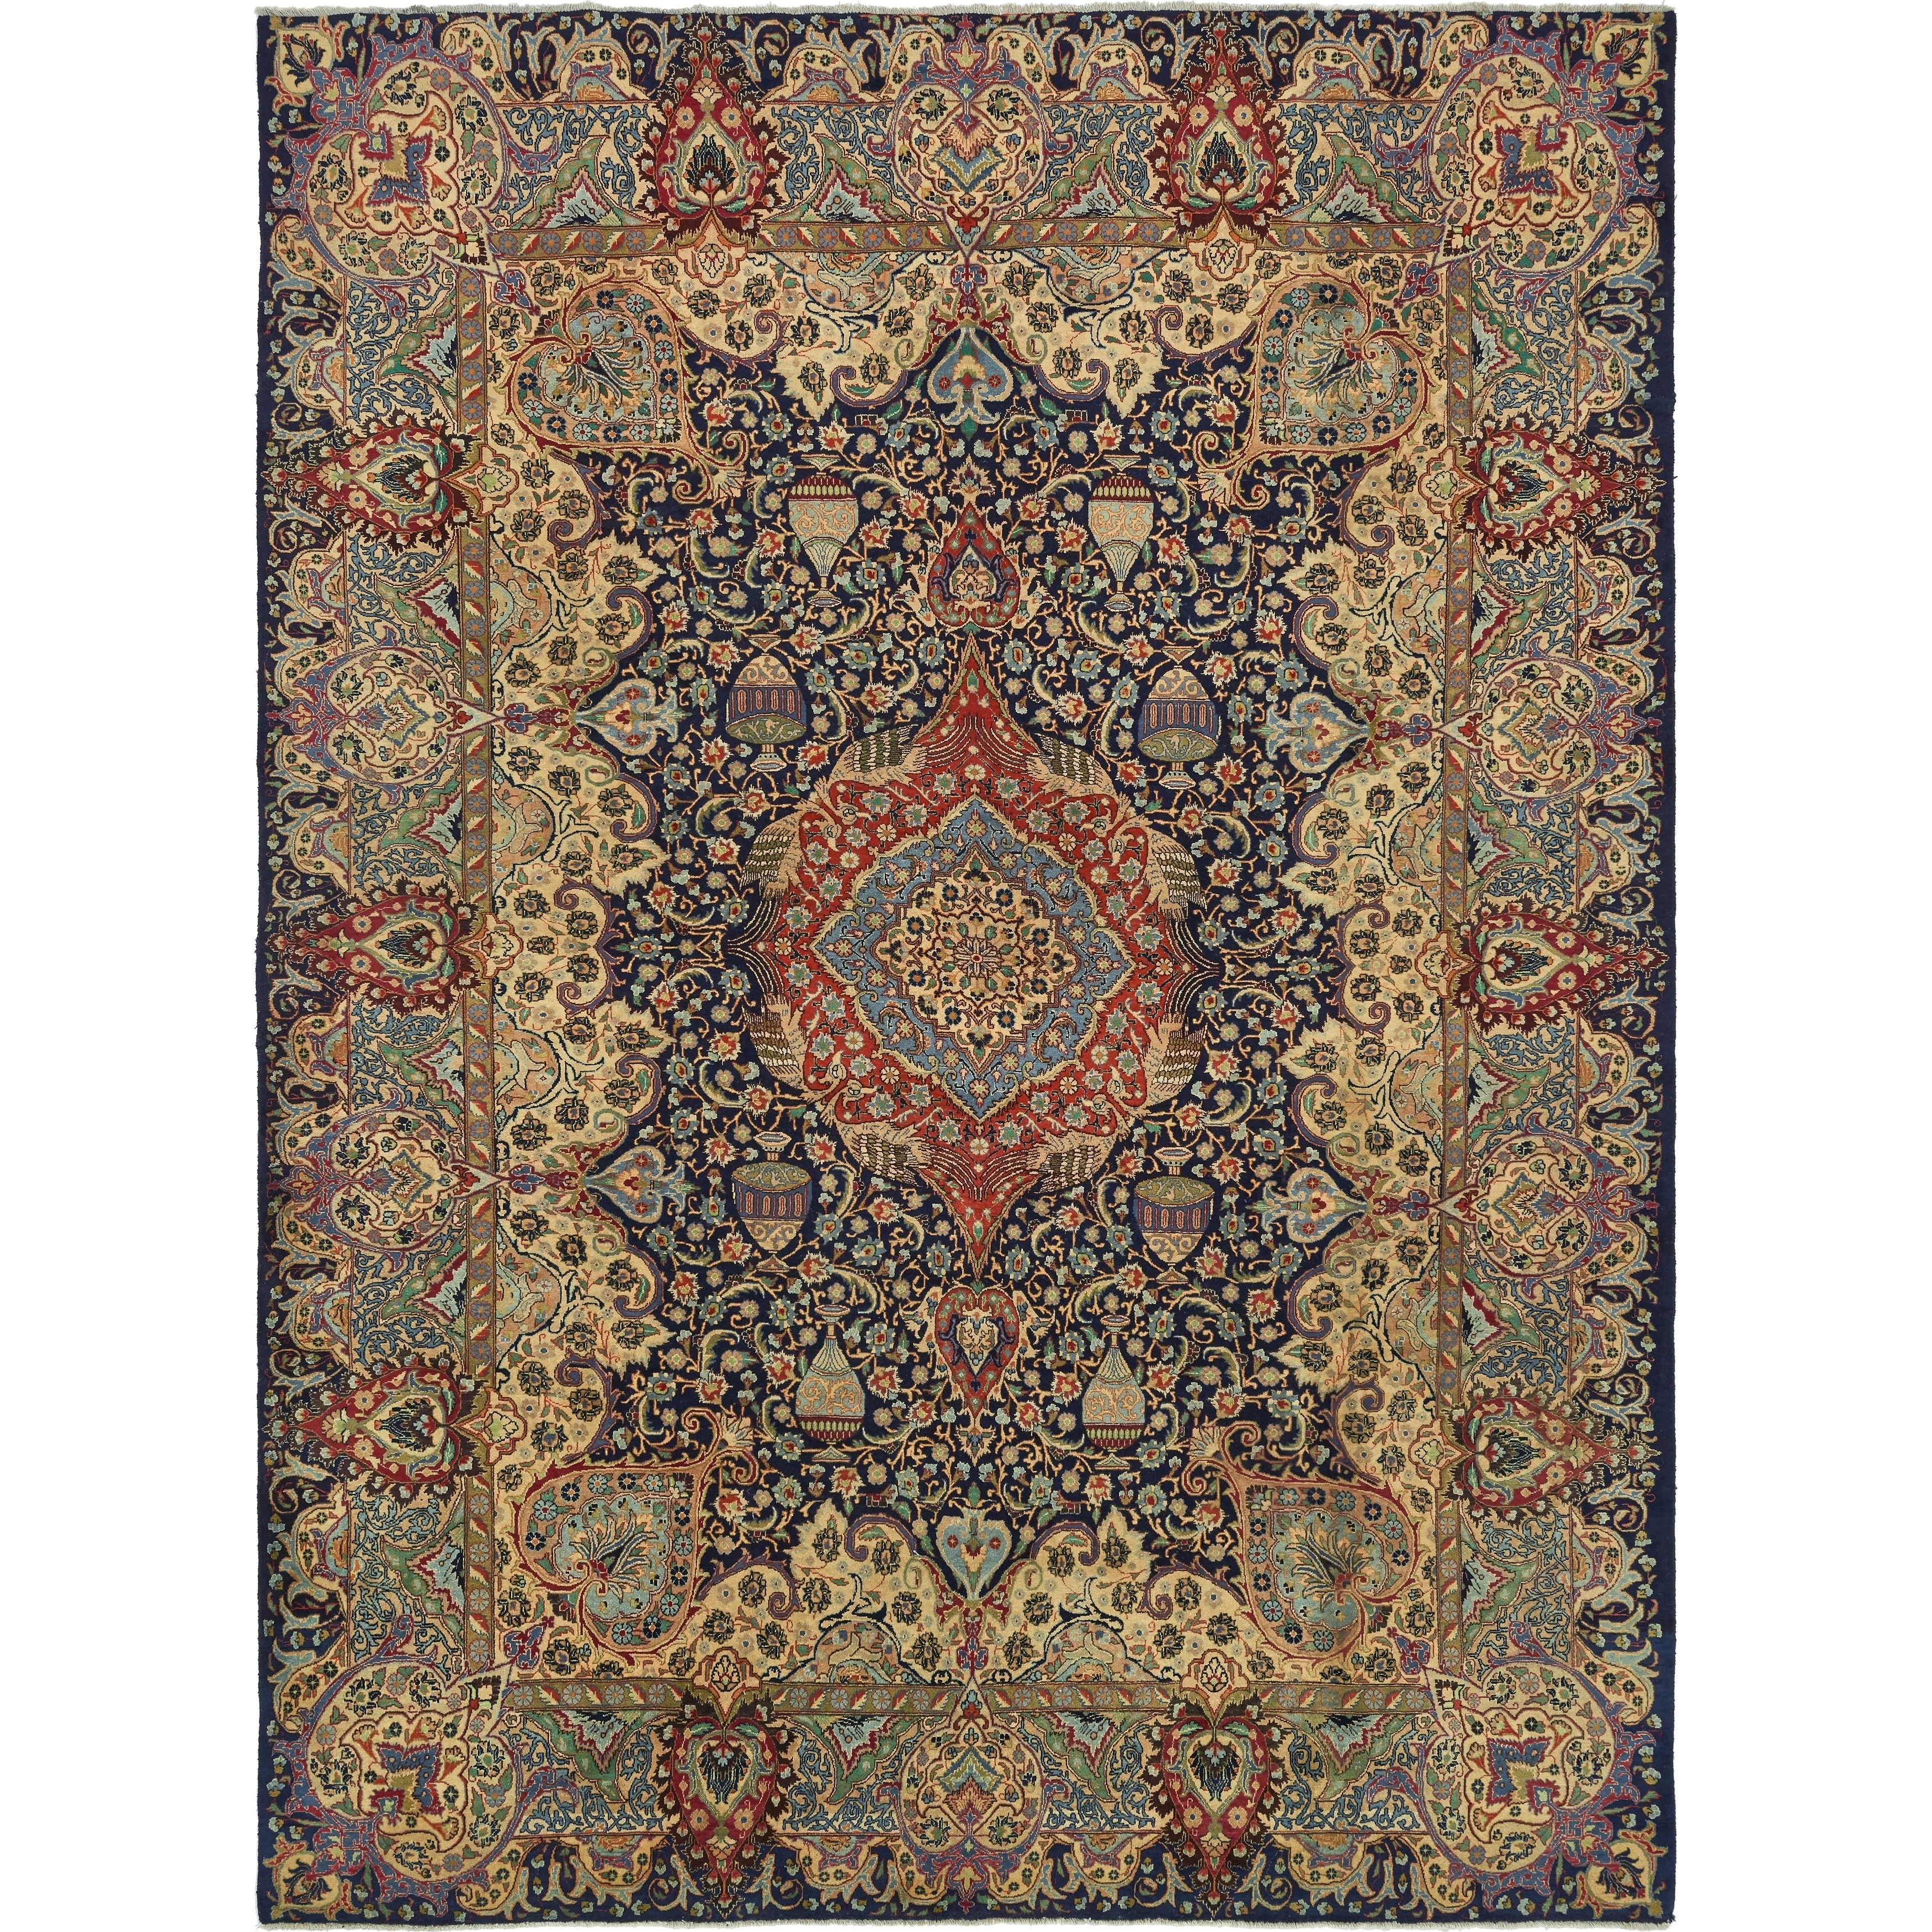 Hand Knotted Kashmar Semi Antique Wool Area Rug - 9 7 x 13 (Navy blue - 9 7 x 13)